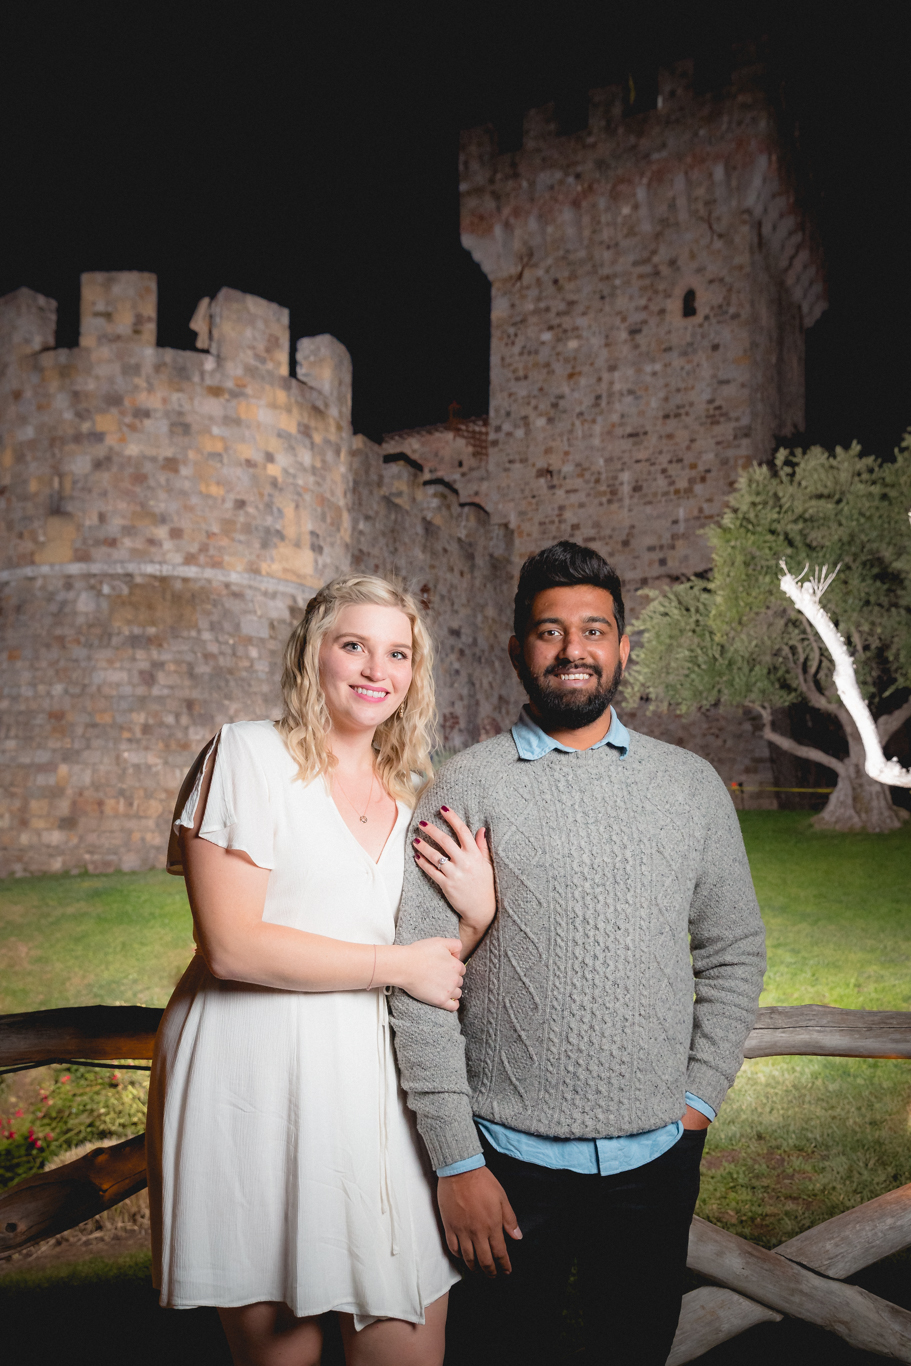 2018.12.03_Ashir-and-Emily-Engagement-Photography-@heymikefrancis-napa-valley-wedding-sacremento-california-heyfrancis-mikefrancis-8333.jpg